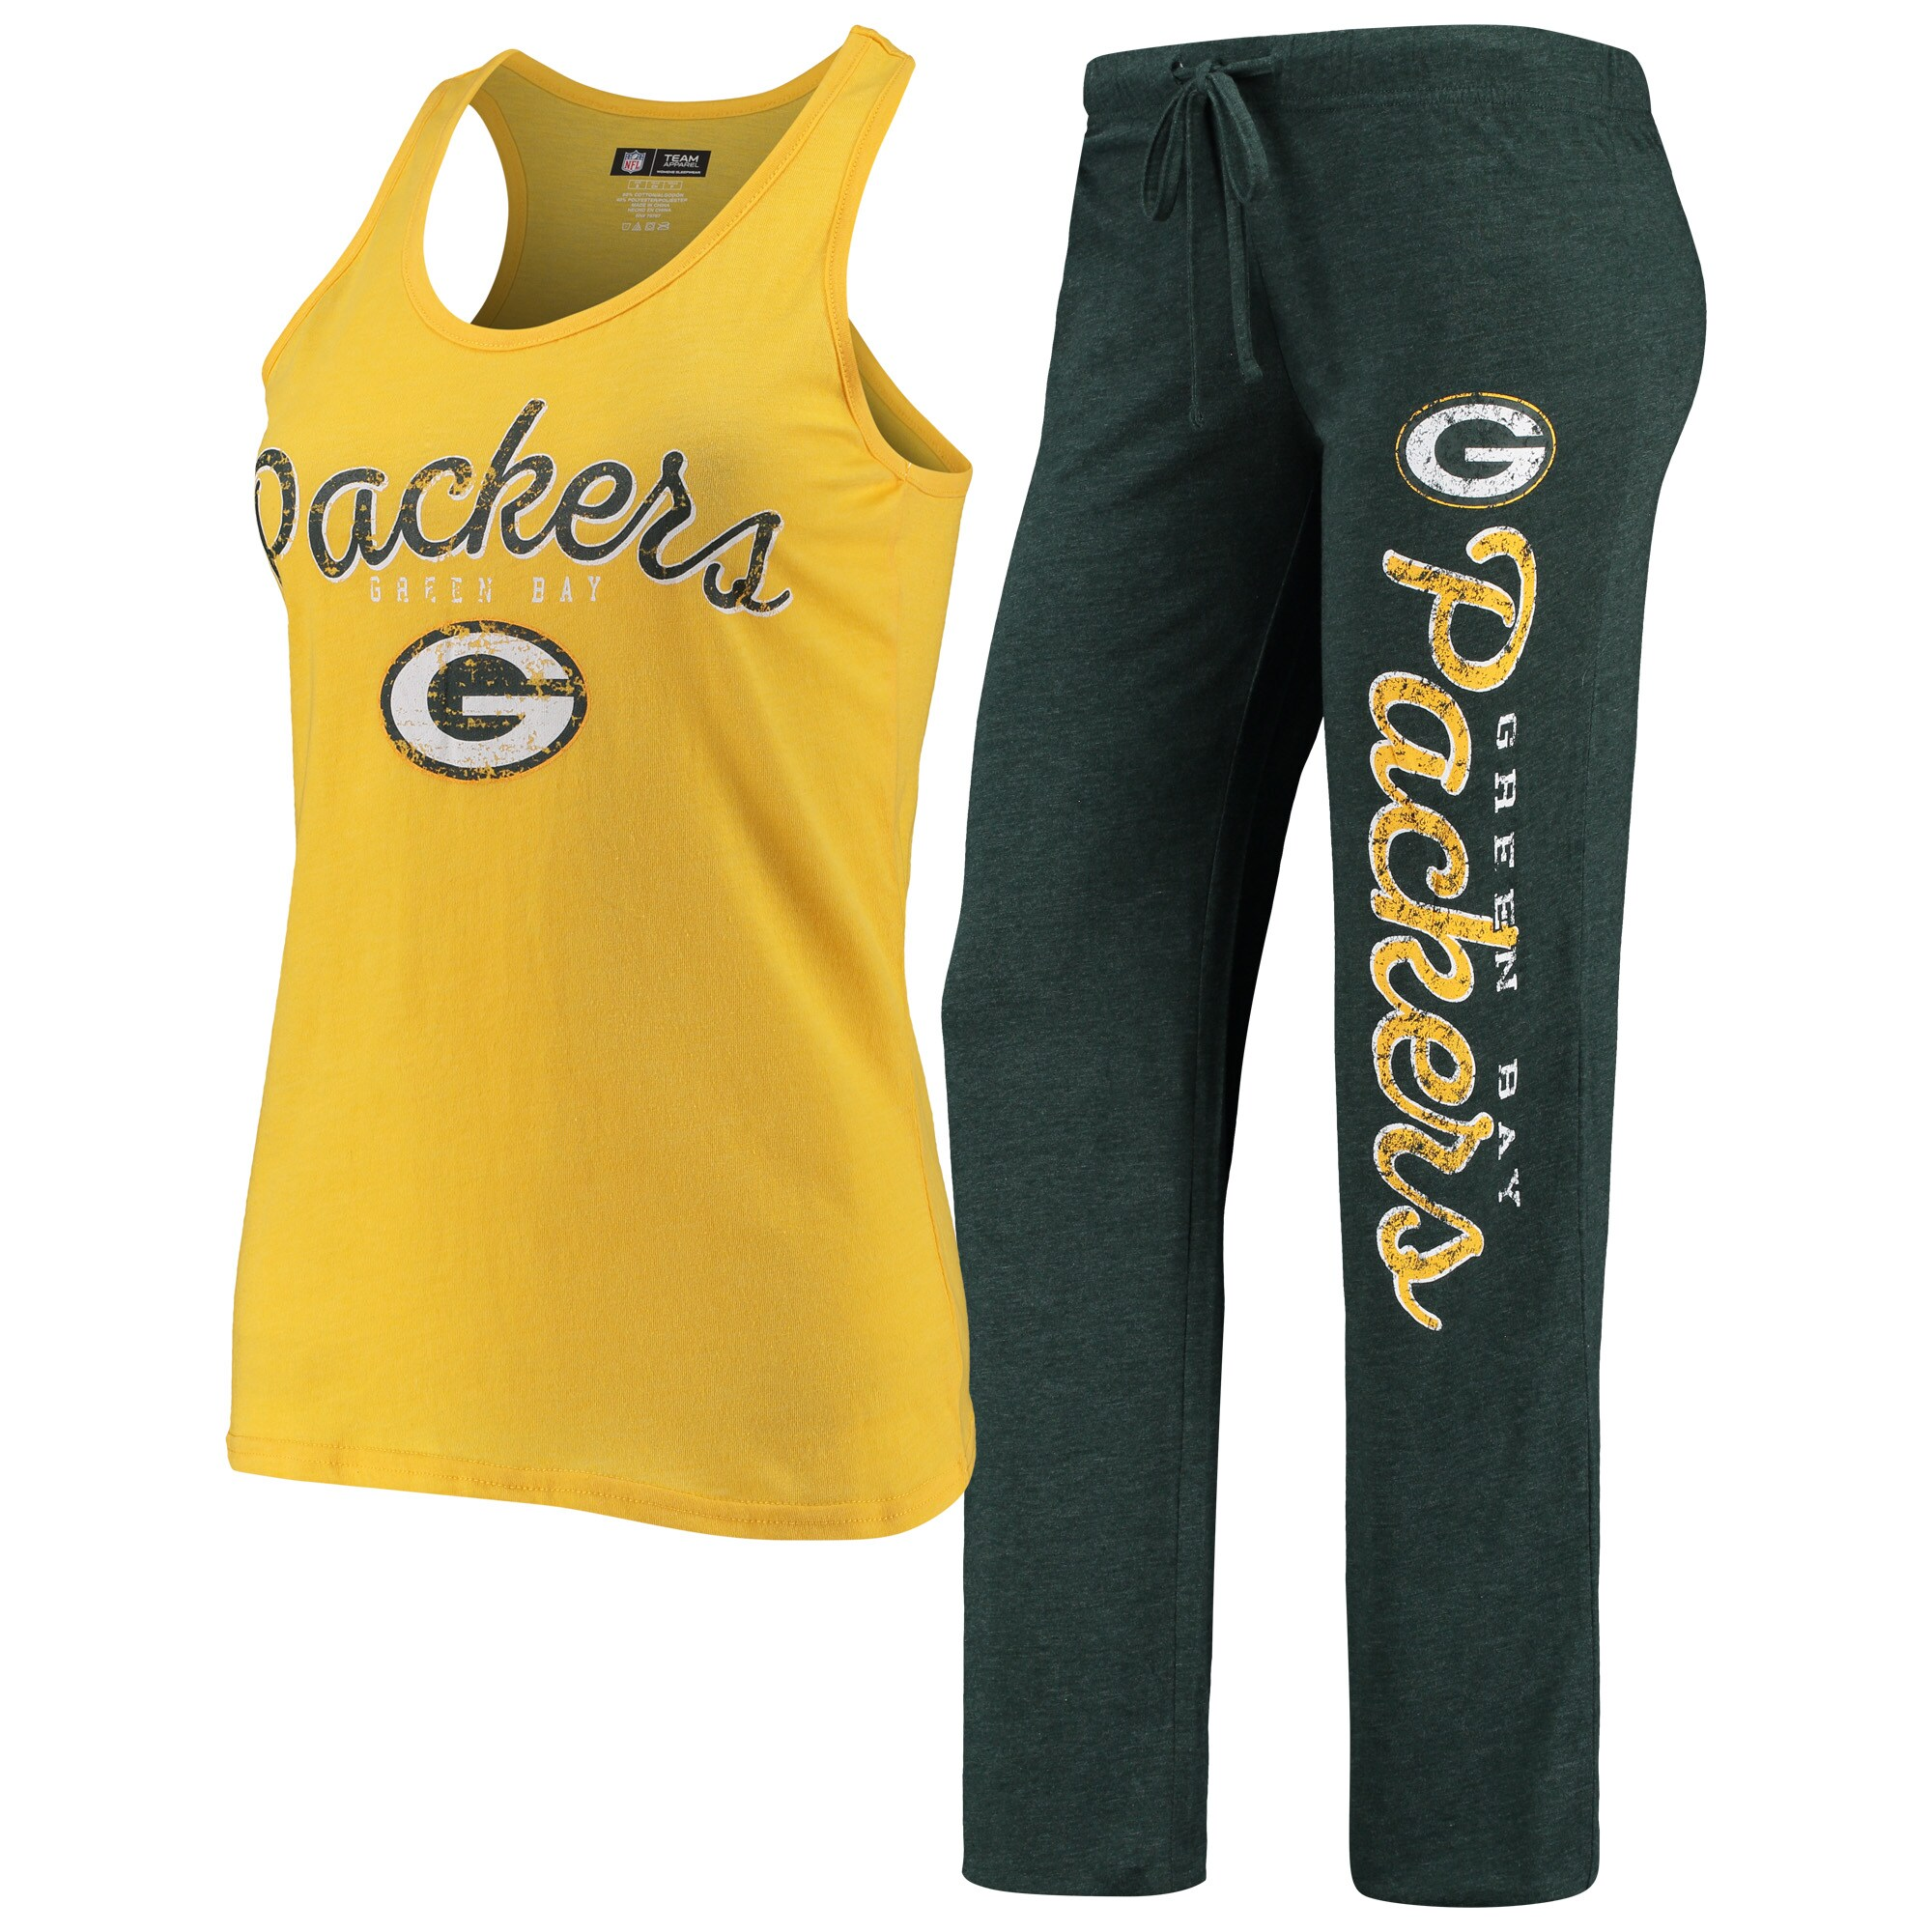 Green Bay Packers Concepts Sport Women's Topic Tank Top & Pants Sleep Set - Gold/Heathered Green